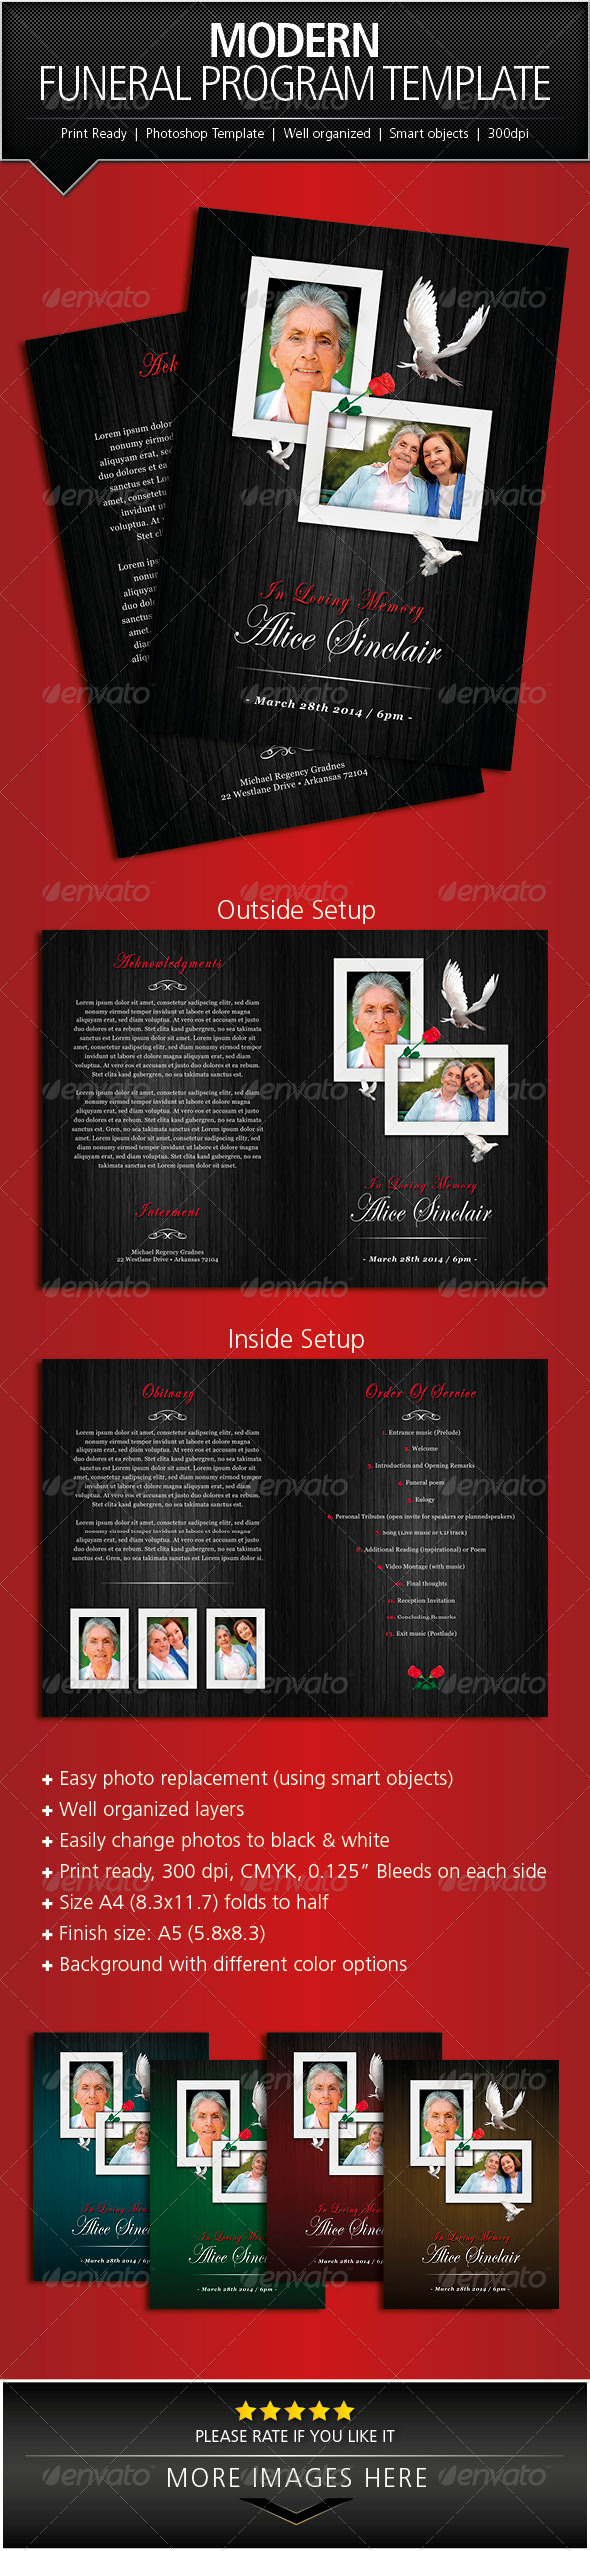 Funeral Program Template Free Download  Free Funeral Templates Download